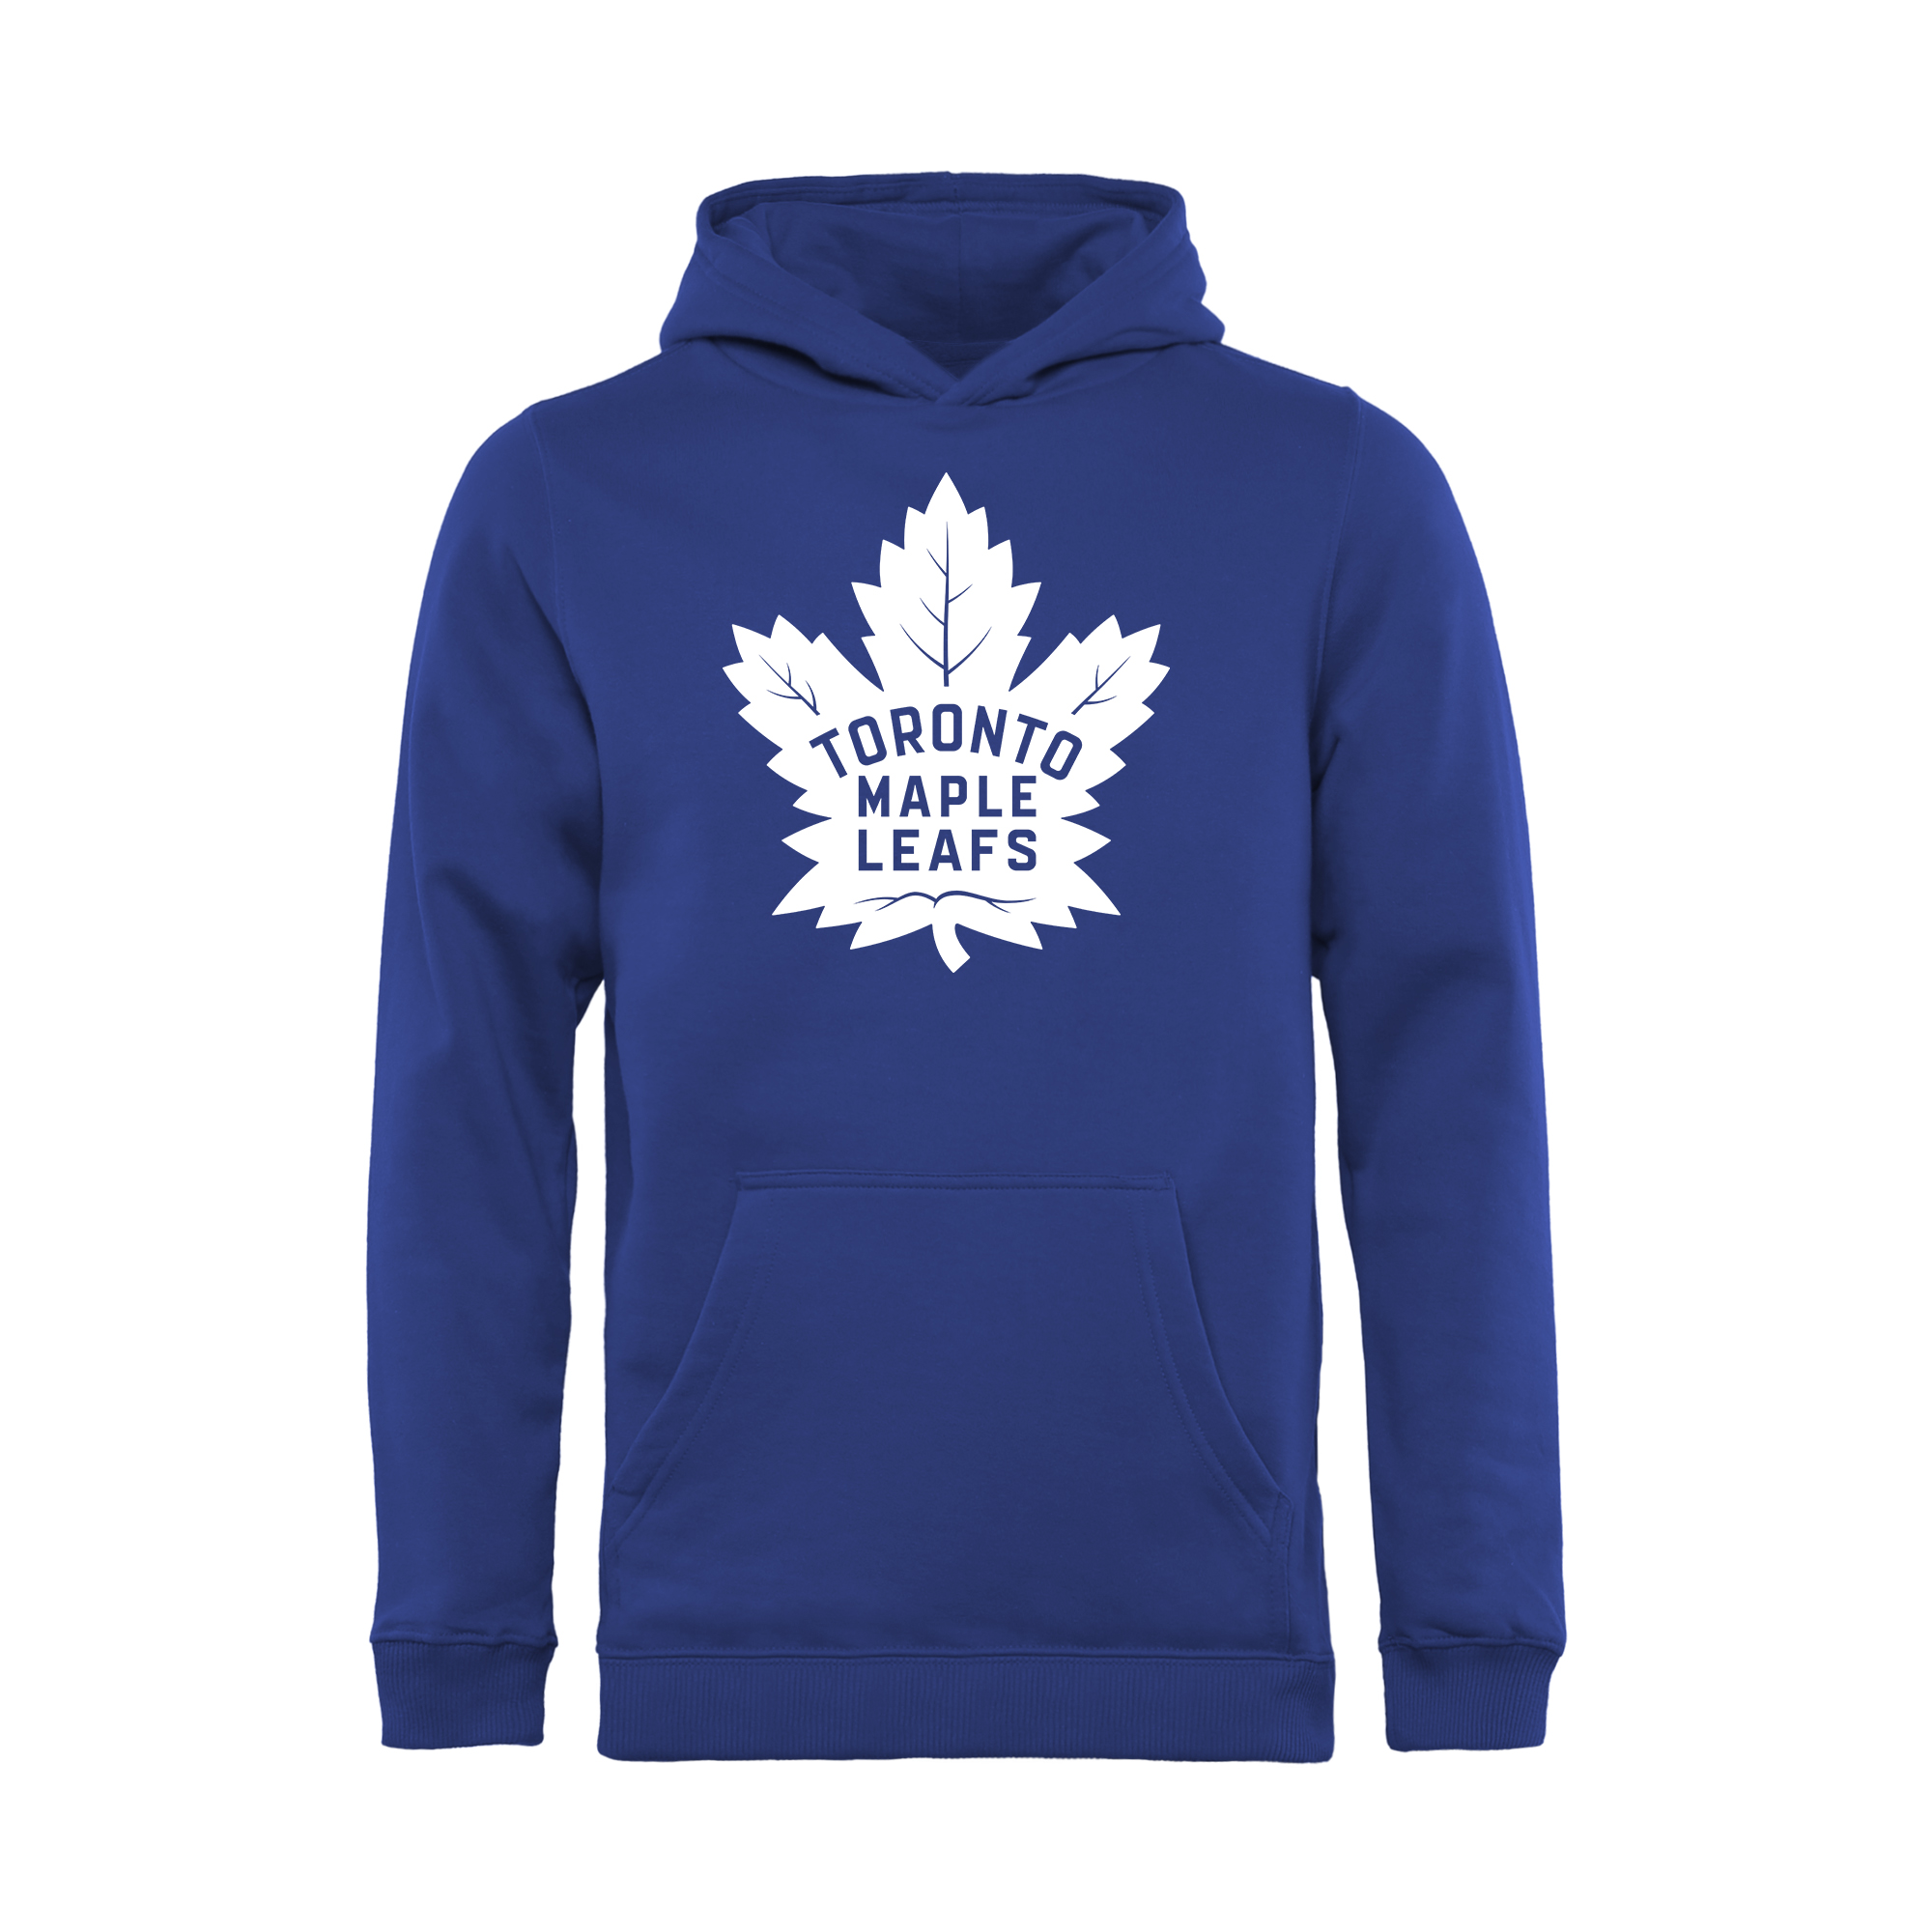 Toronto Maple Leafs Youth New Primary Logo Pullover Hoodie - Blue